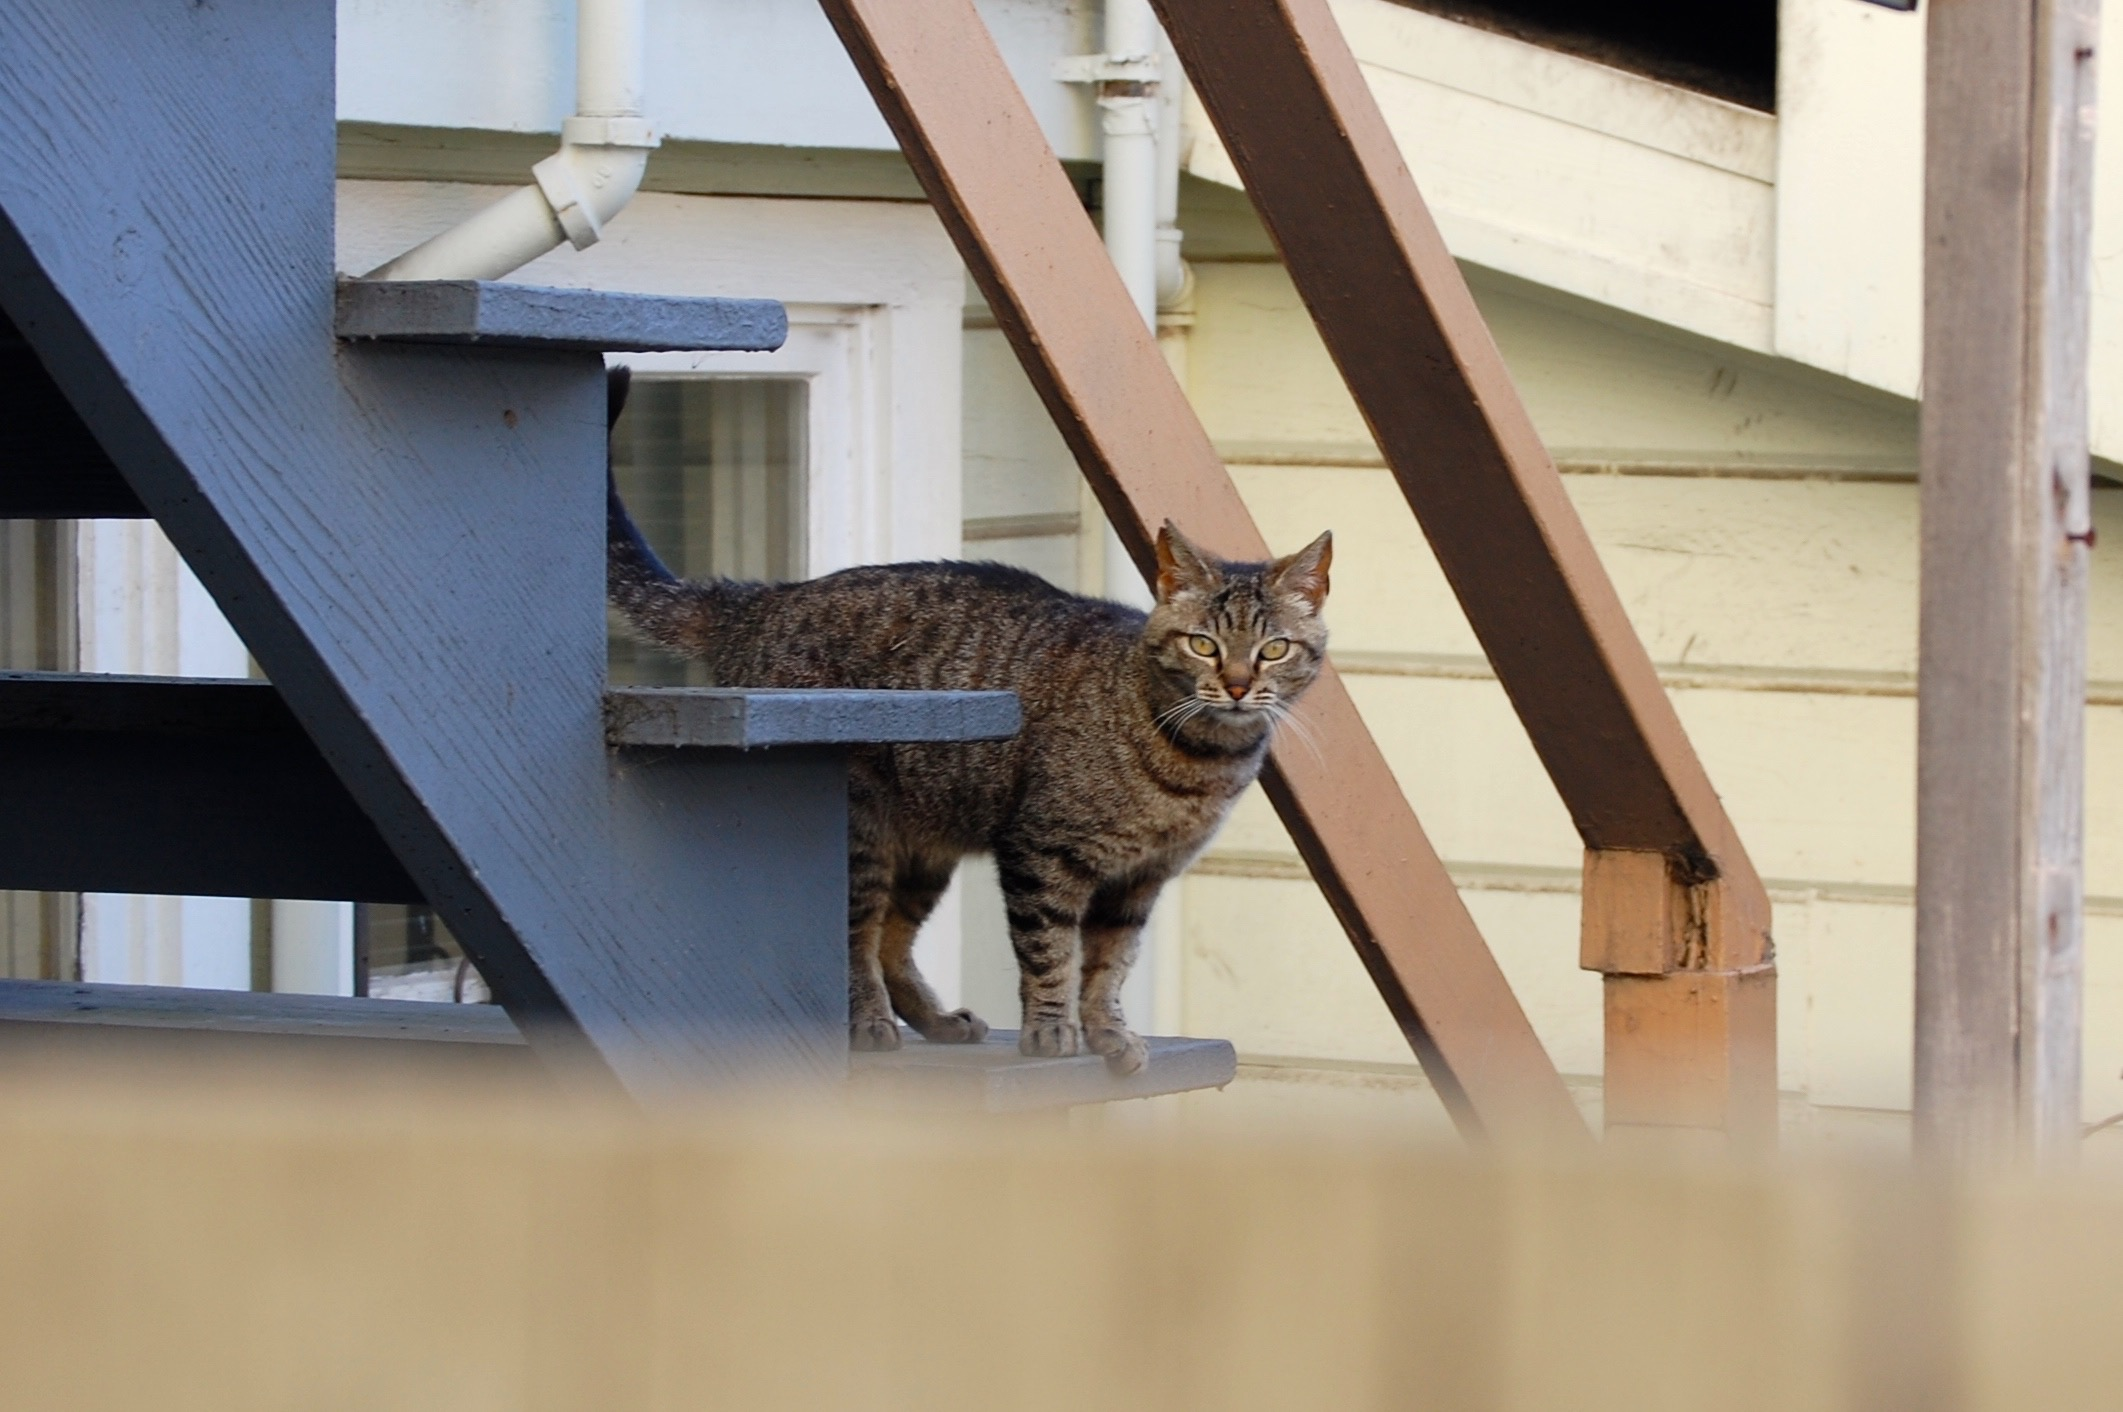 A feral cat waits for dinner at a safe distance. Feral colonies depend on humans to provide a consistent food source.